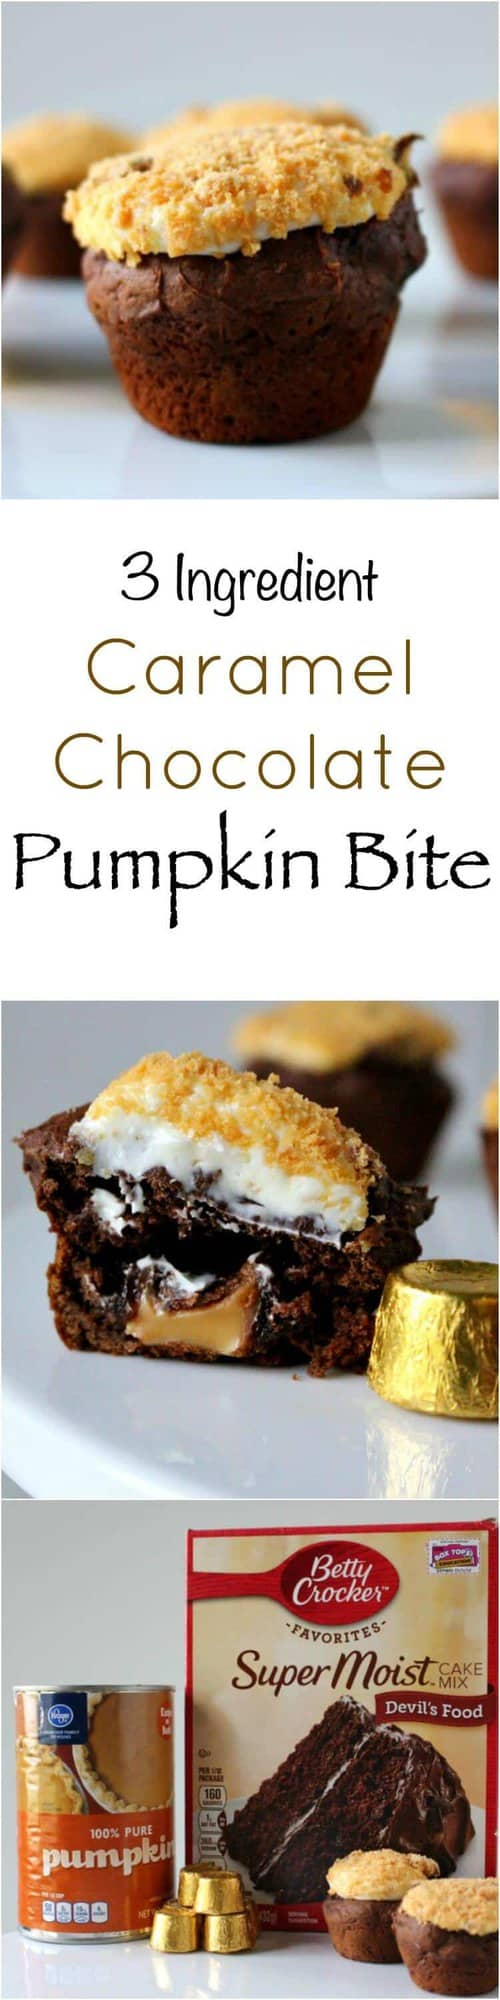 3 ingredient Caramel Chocolate Pumpkin Bite